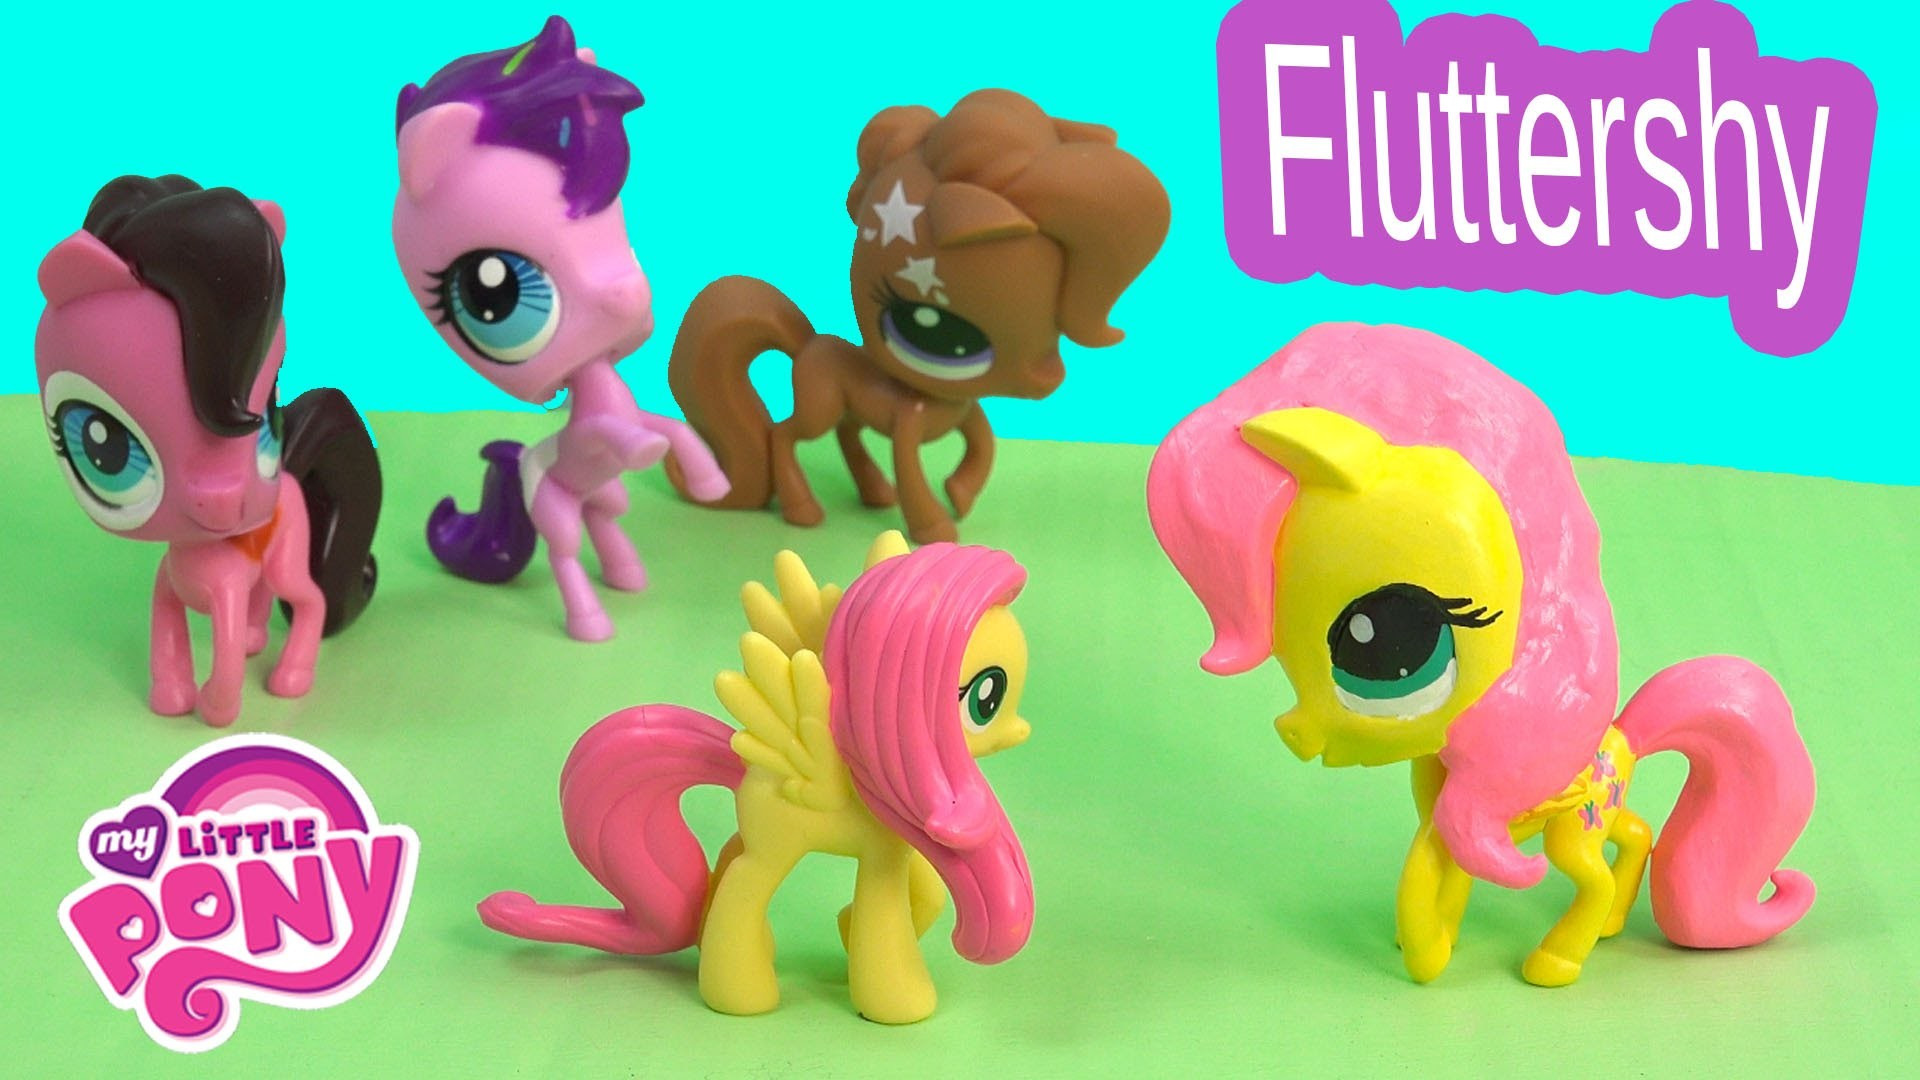 DIY My Little Pony Fluttershy Inspired MLP LPS Littlest Pet Shop Toys 2015 Clay Custom Craft Video